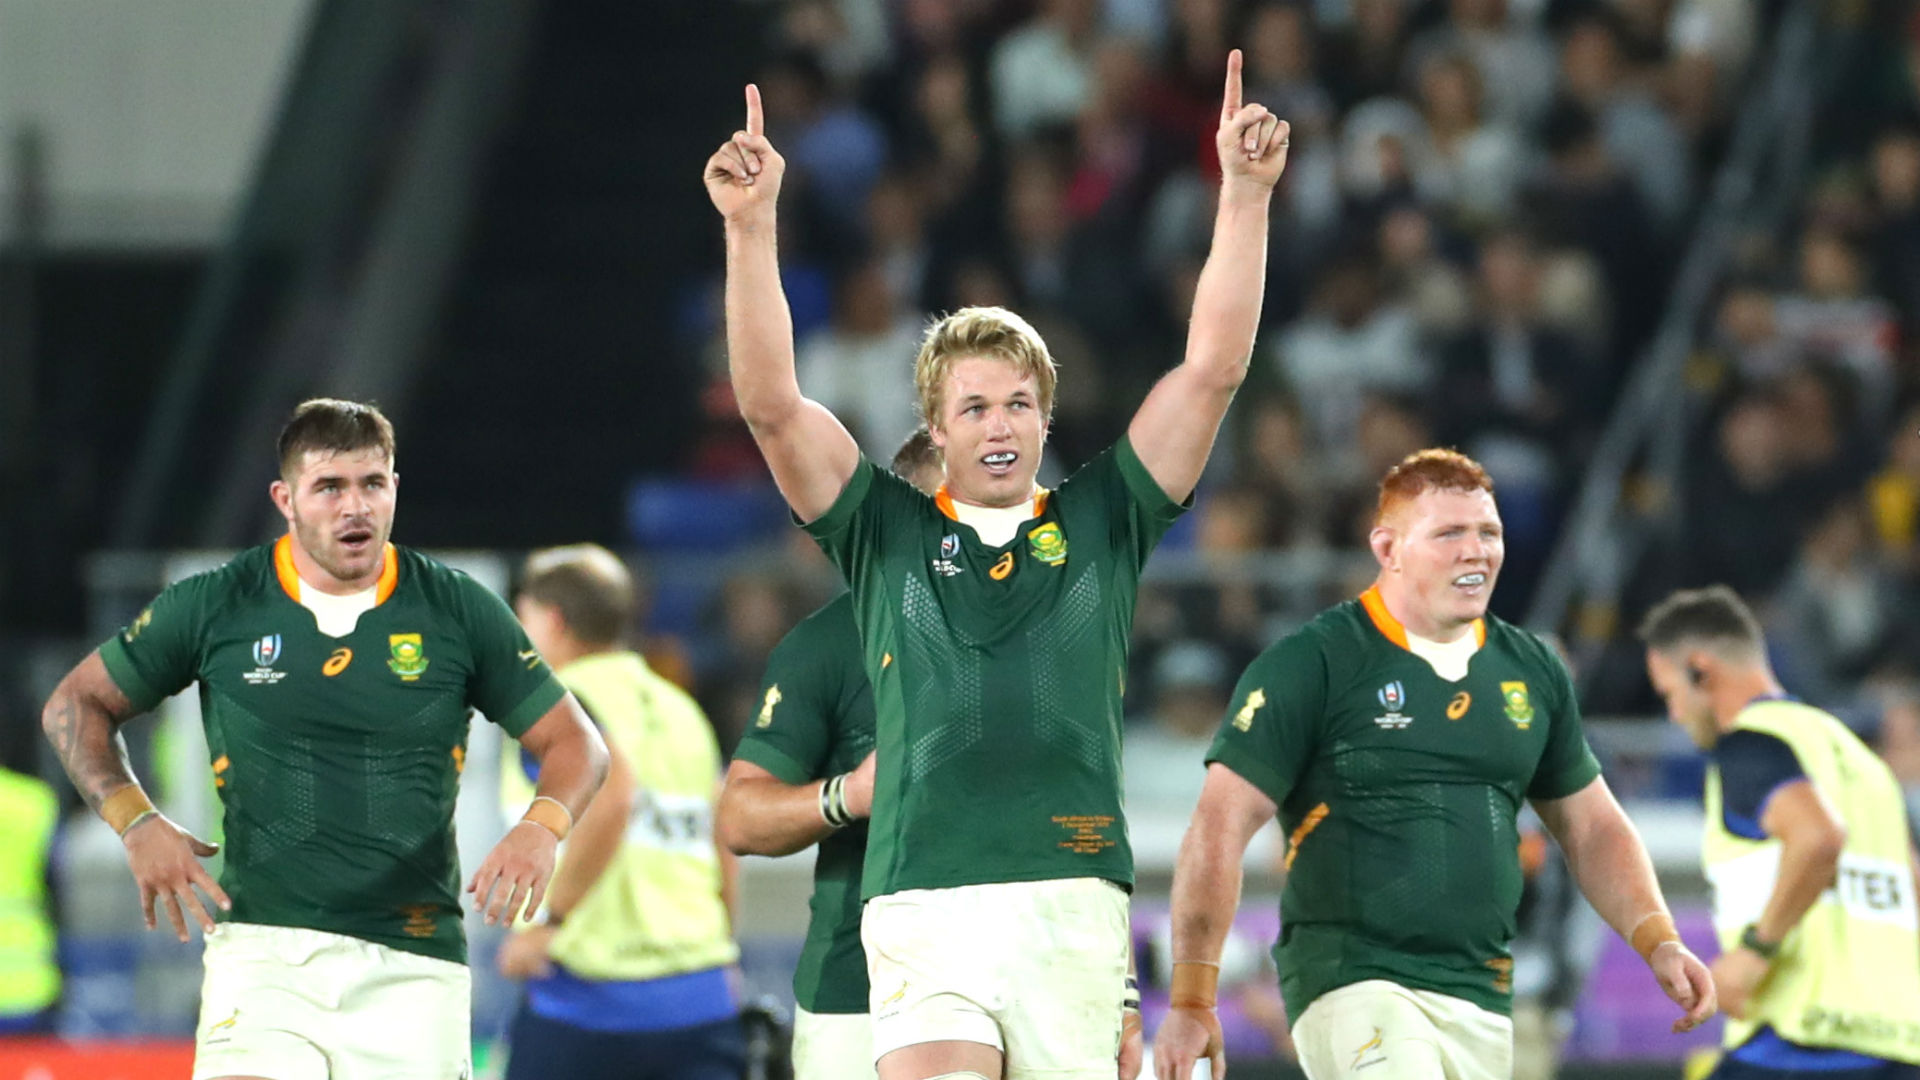 Rugby World Cup 2019: Du Toit and Erasmus land World Rugby awards